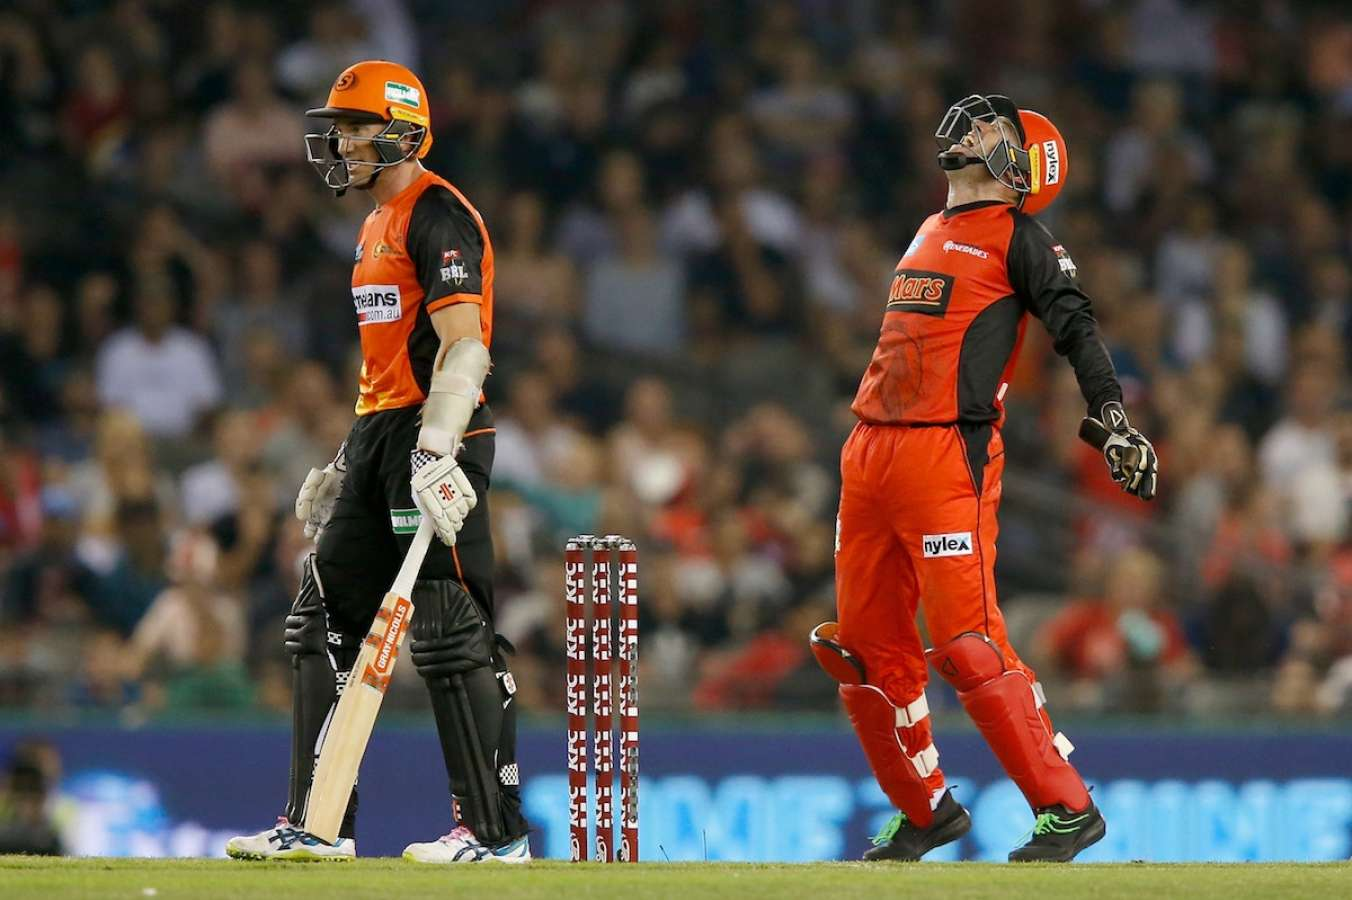 BBL Preview: Perth Scorchers vs Melbourne Renegades